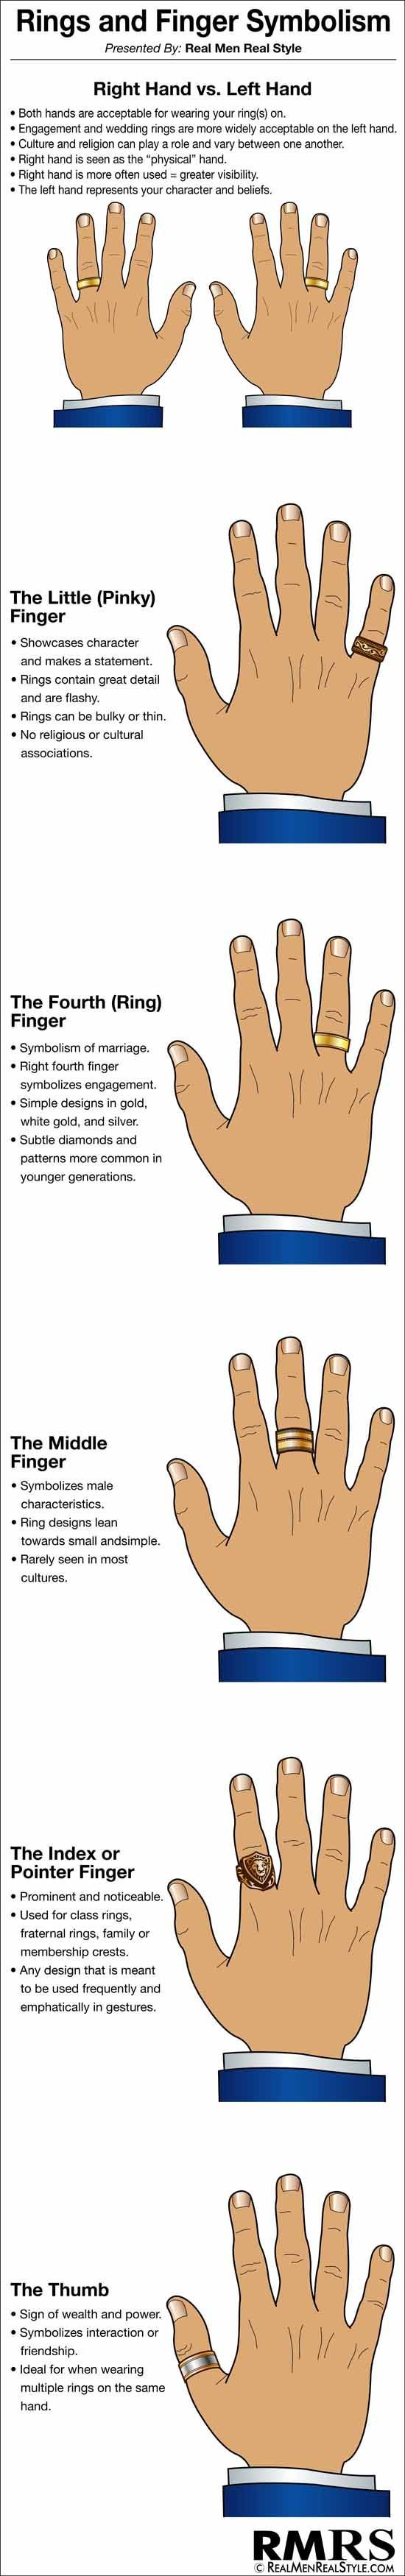 Ring Finger & Symbolismgraphic